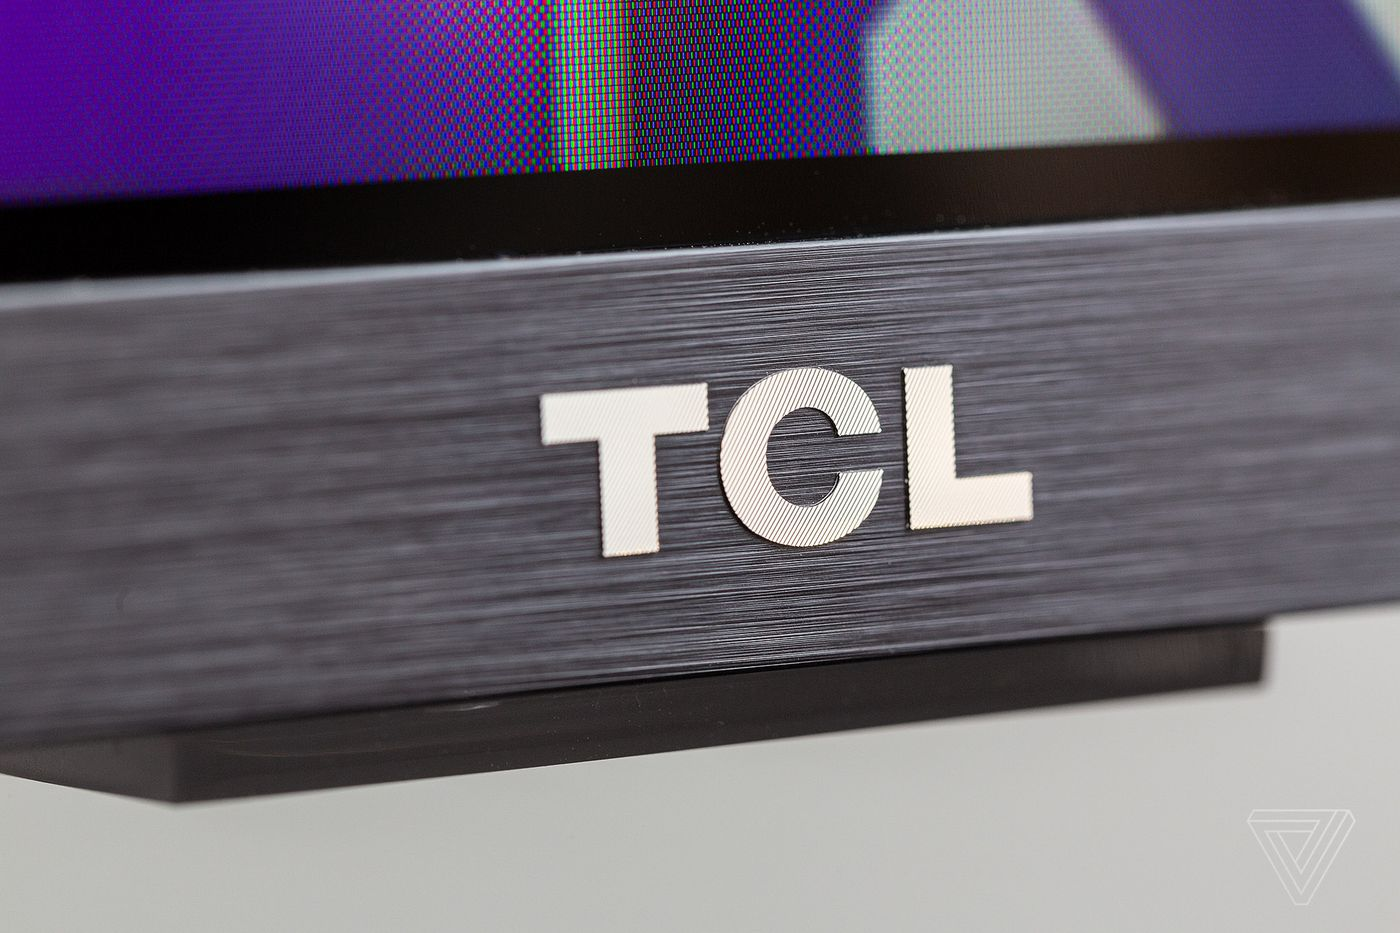 Review: TCL's new 6-Series is the best 4K HDR TV to buy for